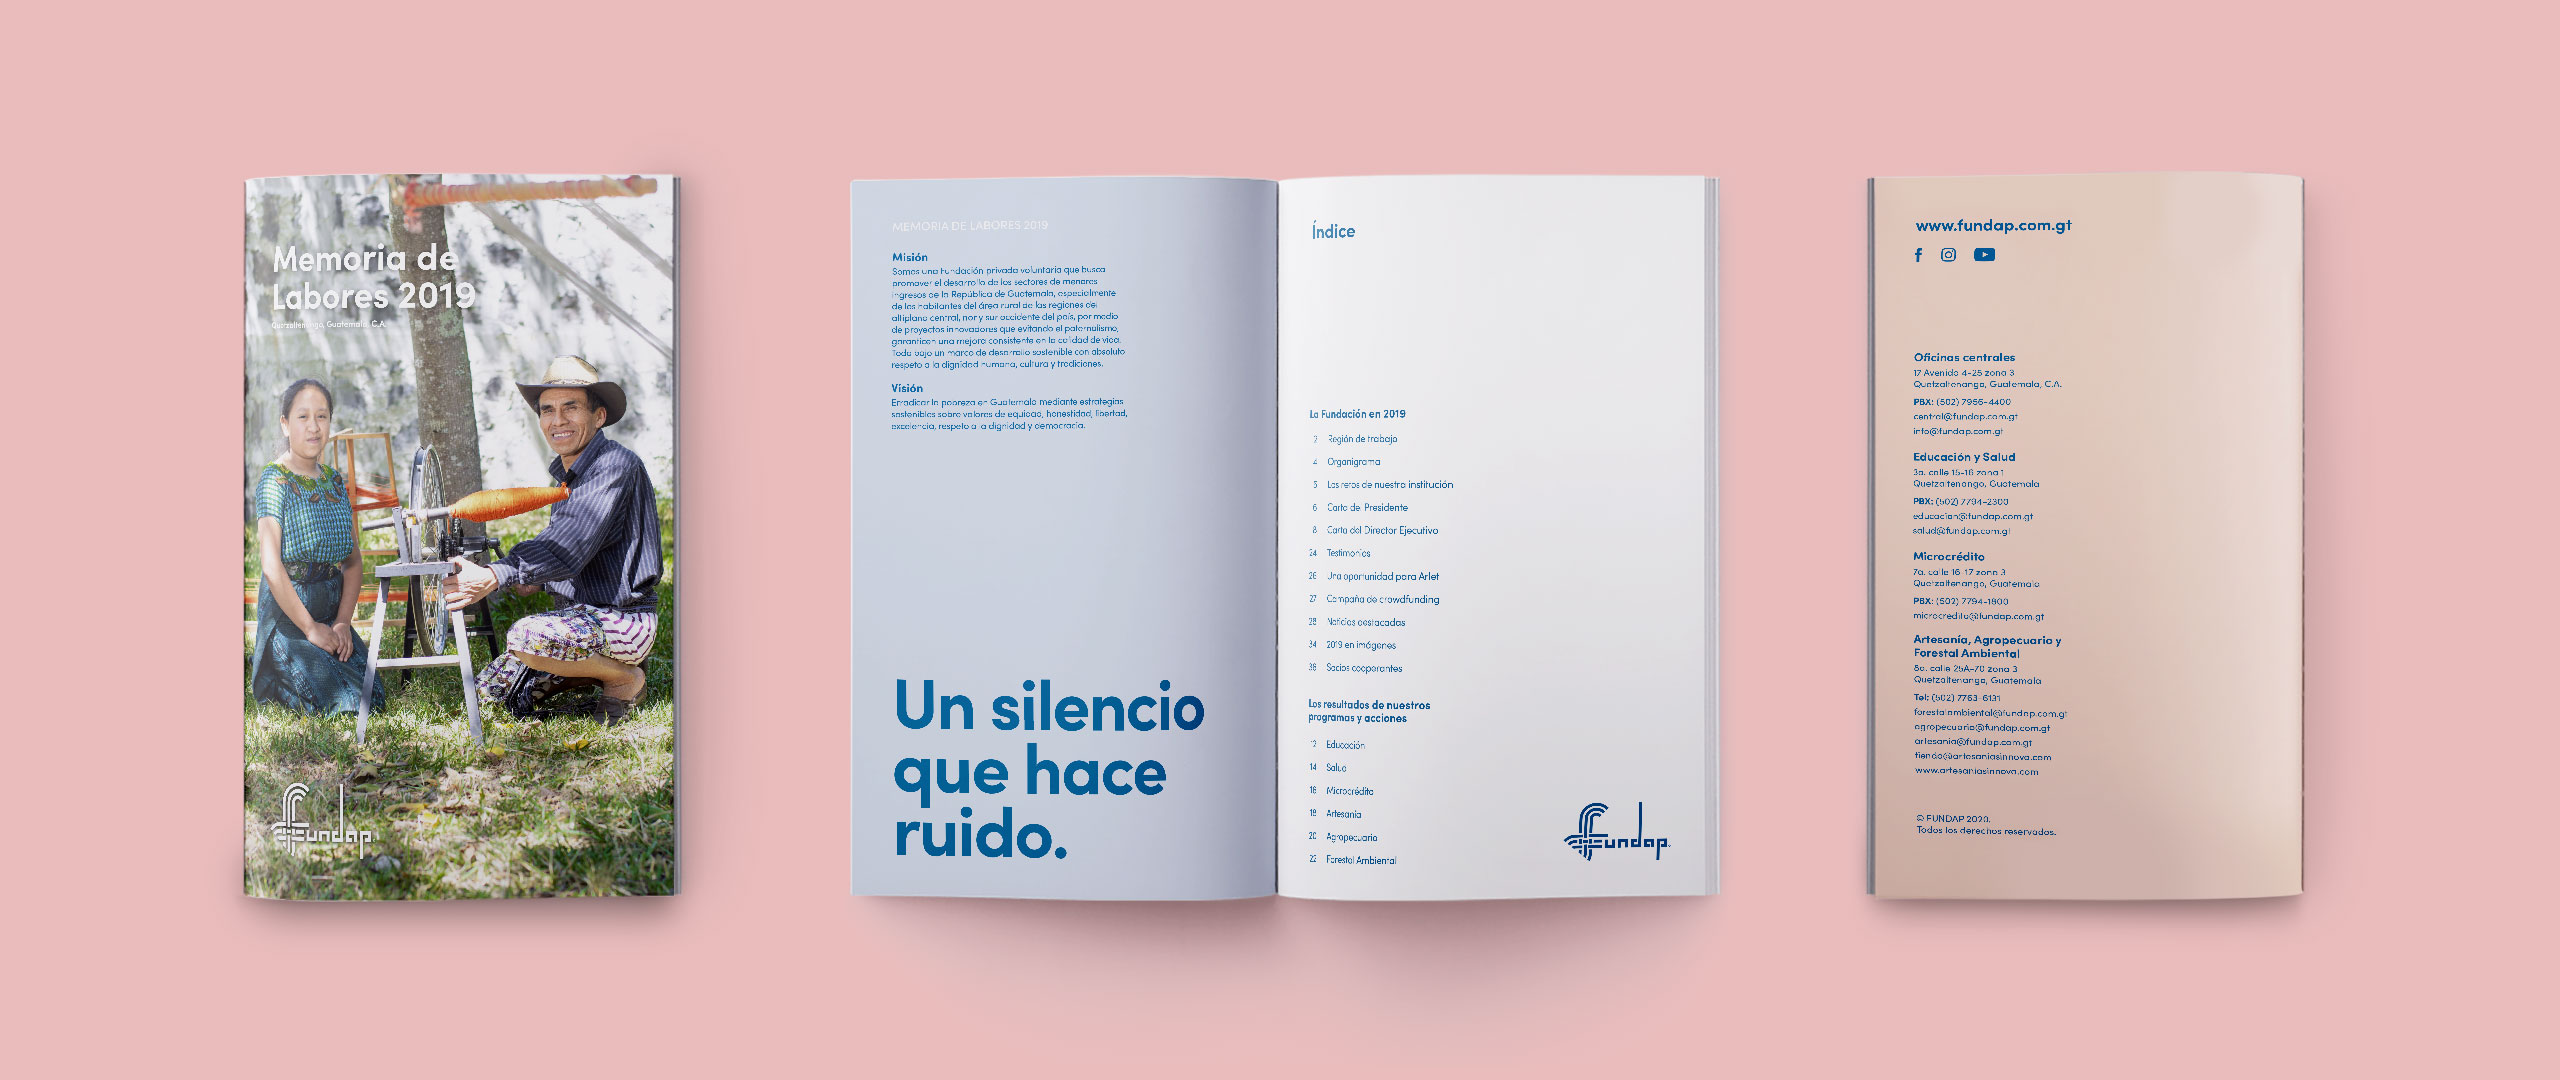 Annual report design by Calmo Agency